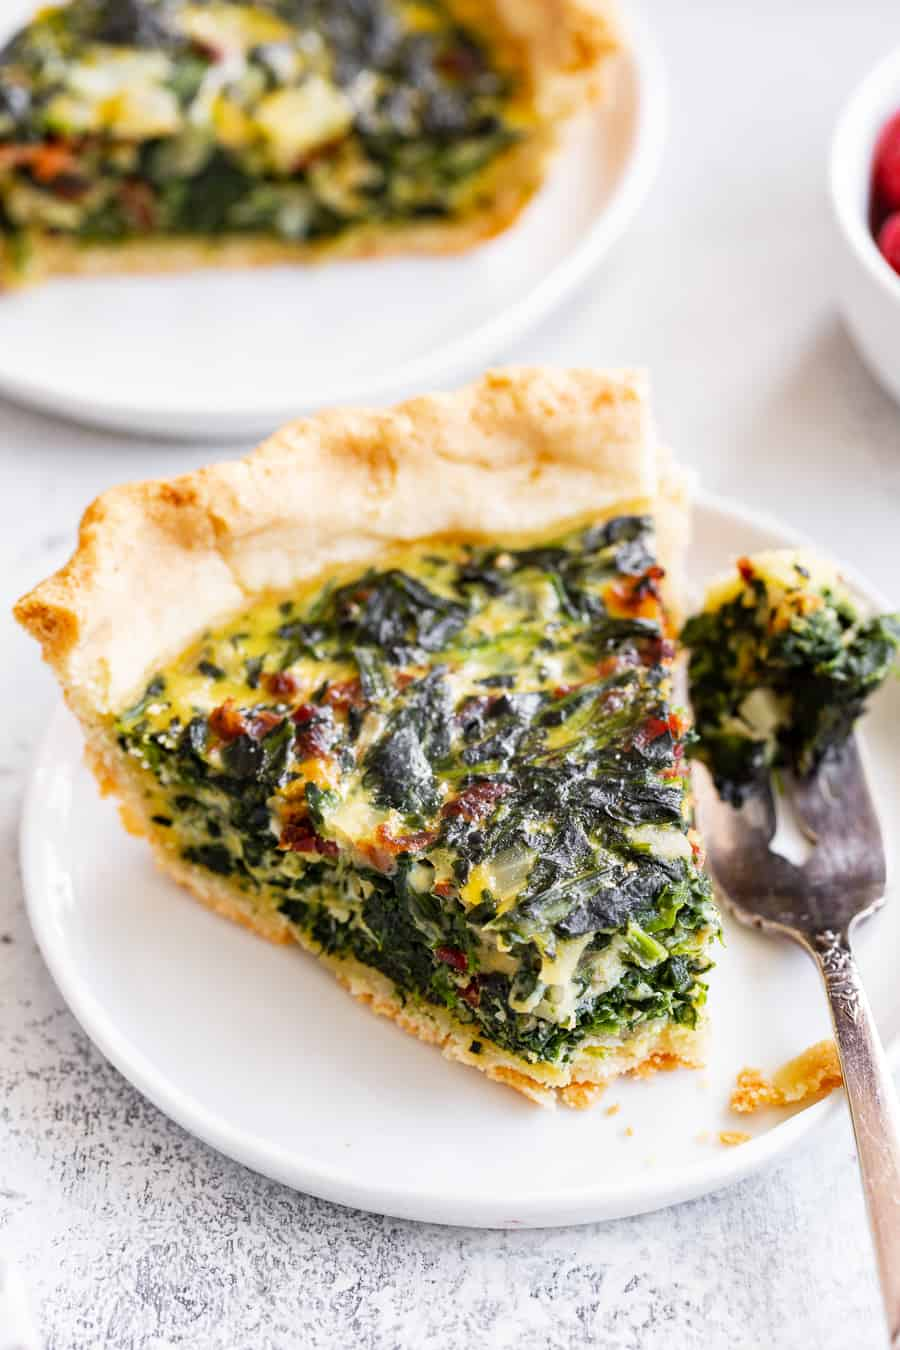 Spinach Quiche With Bacon Paleo Gluten Free Dairy Free